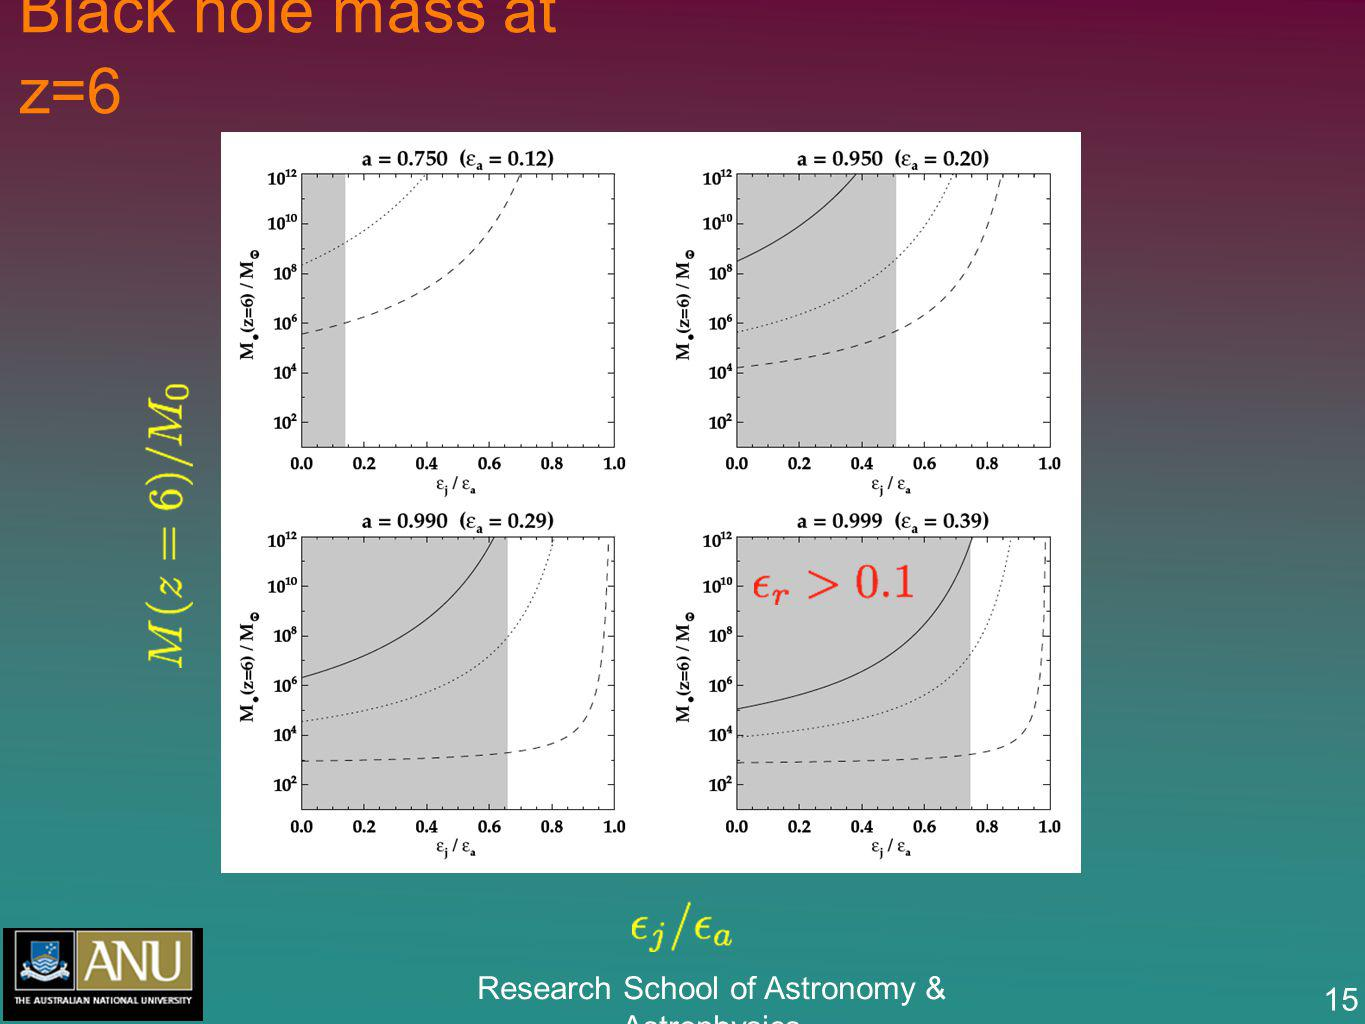 Research School of Astronomy & Astrophysics 15 Black hole mass at z=6